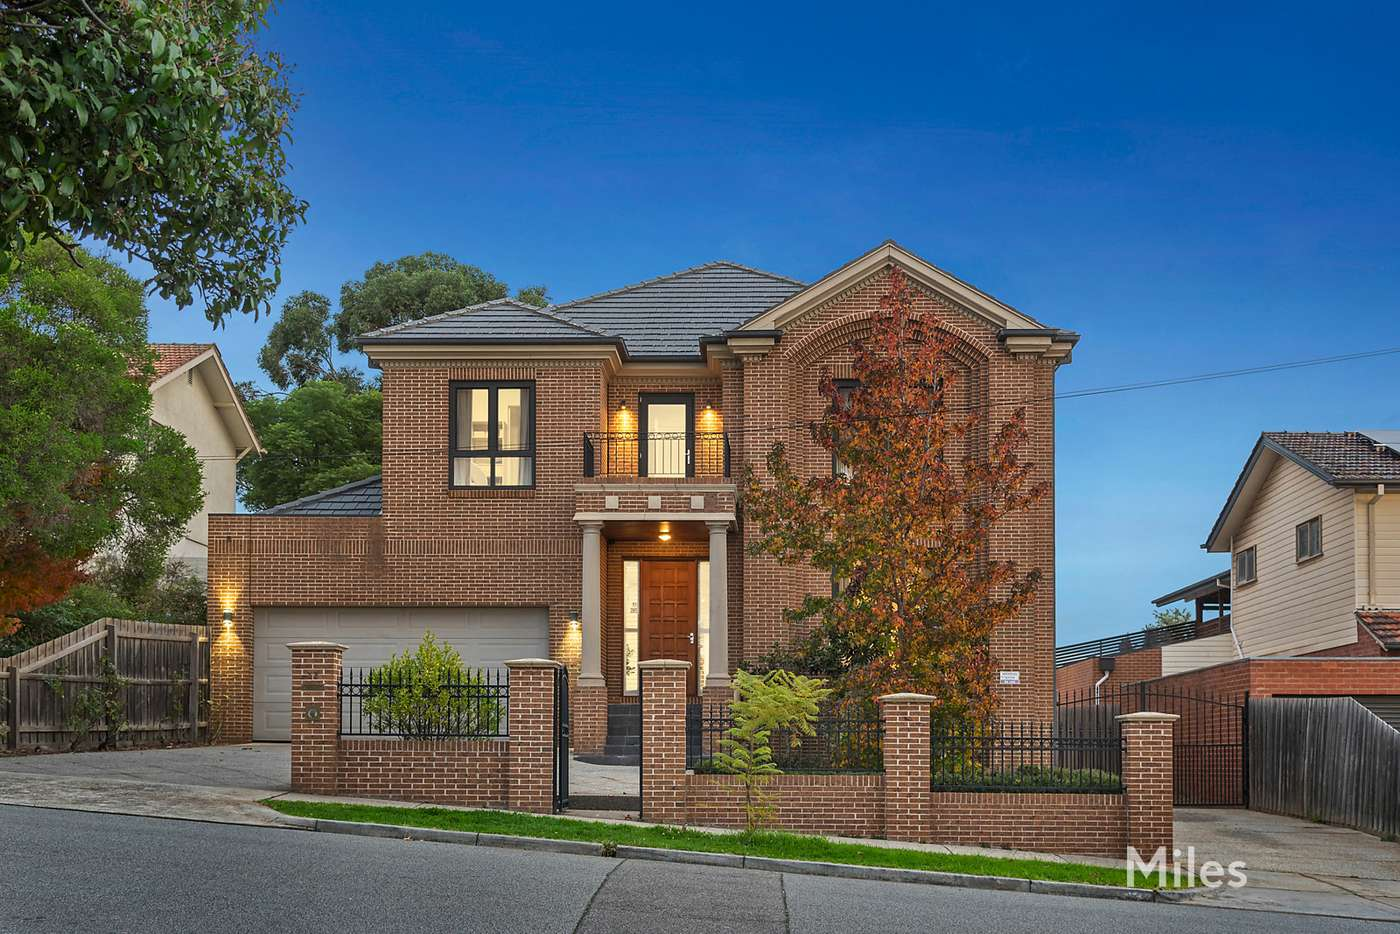 Main view of Homely house listing, 13 Lantana Street, Ivanhoe VIC 3079